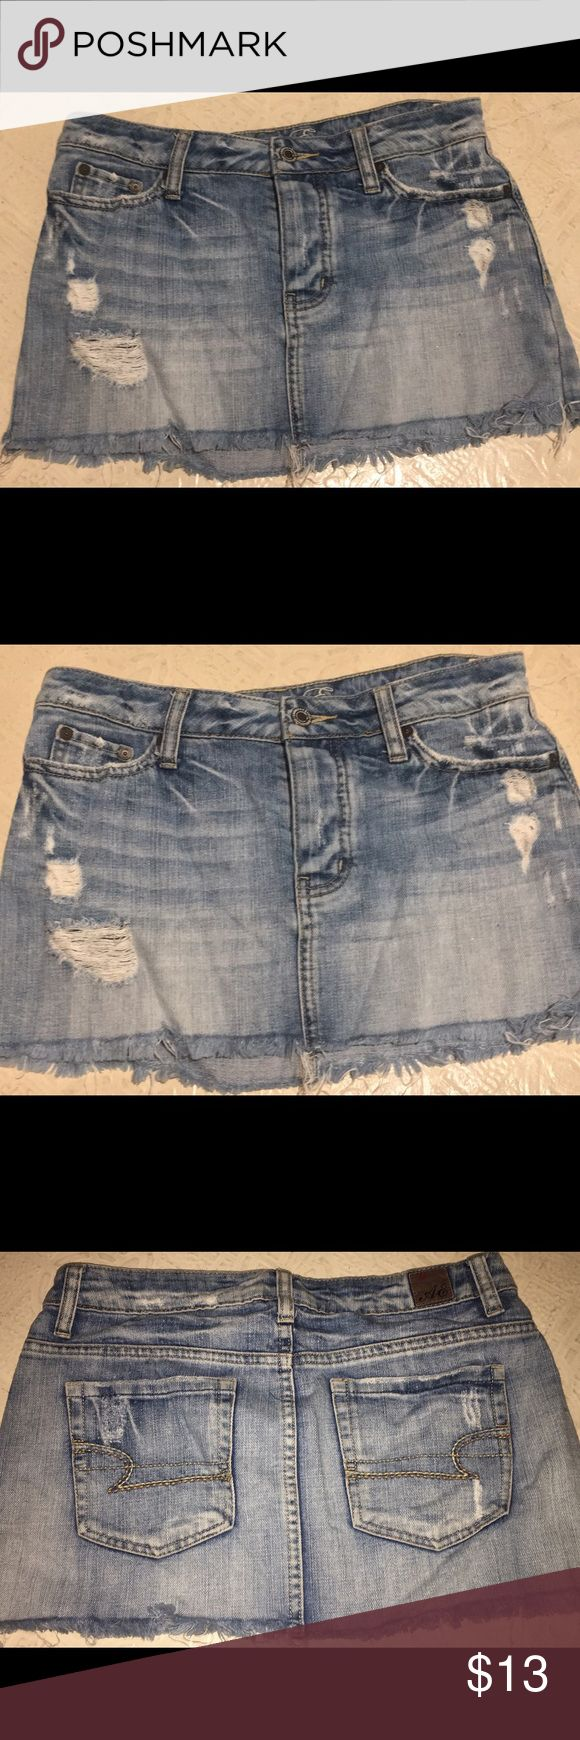 American Eagle Jean Skirt American Eagle Outfitters Jean Skirt! Perfect condition! Worn a few times but no damage whatsoever. American Eagle Outfitters Skirts